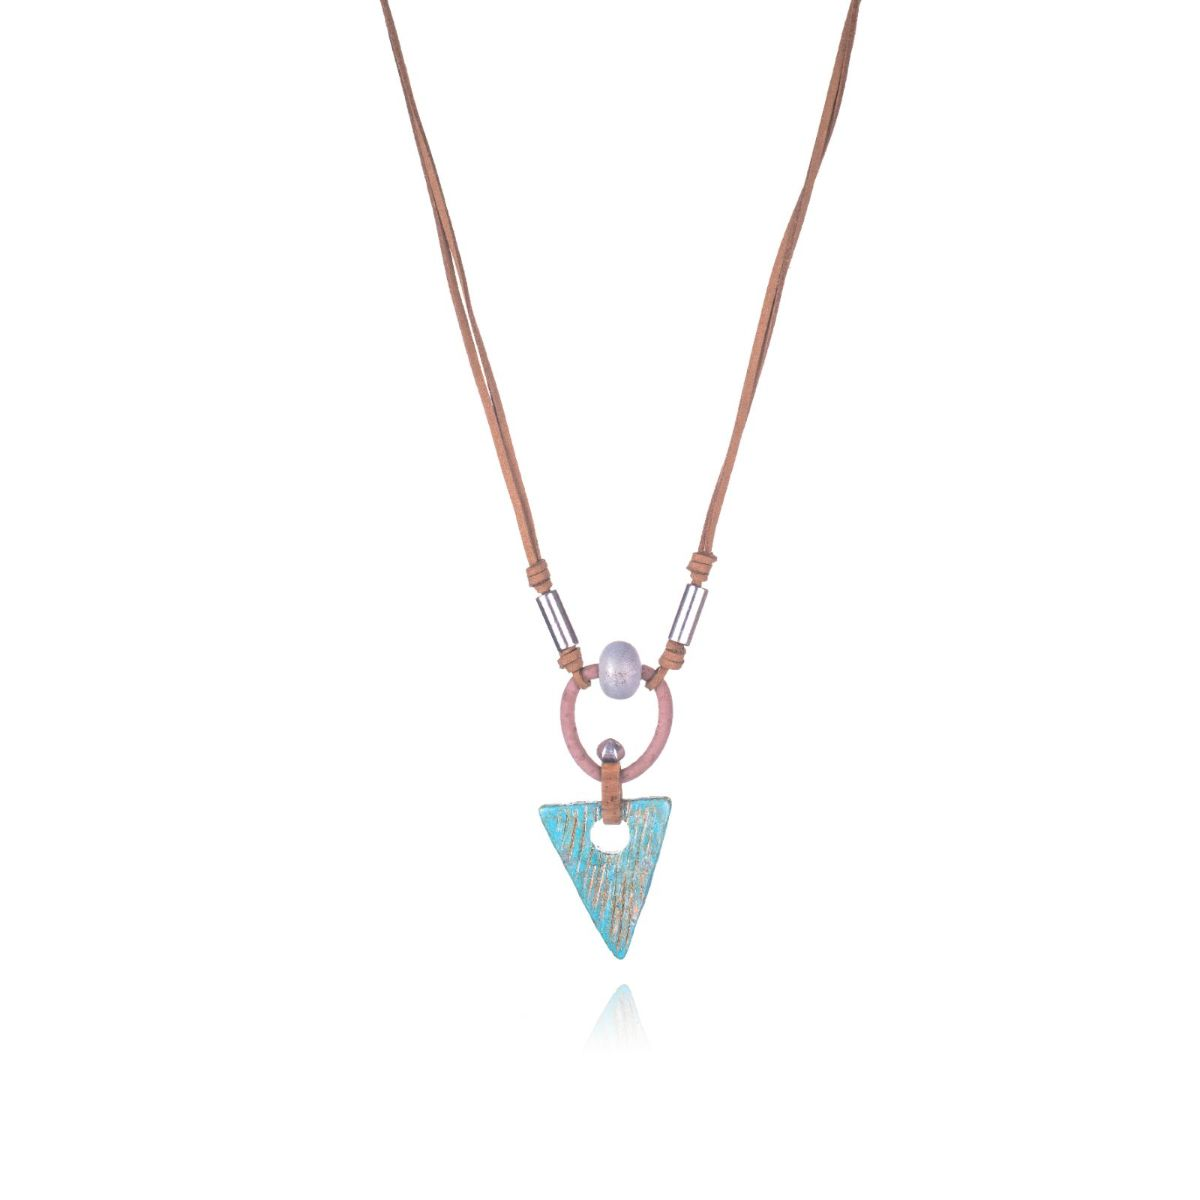 Dakar brown suede adjustable long necklace with triangular turquoise wood pendant